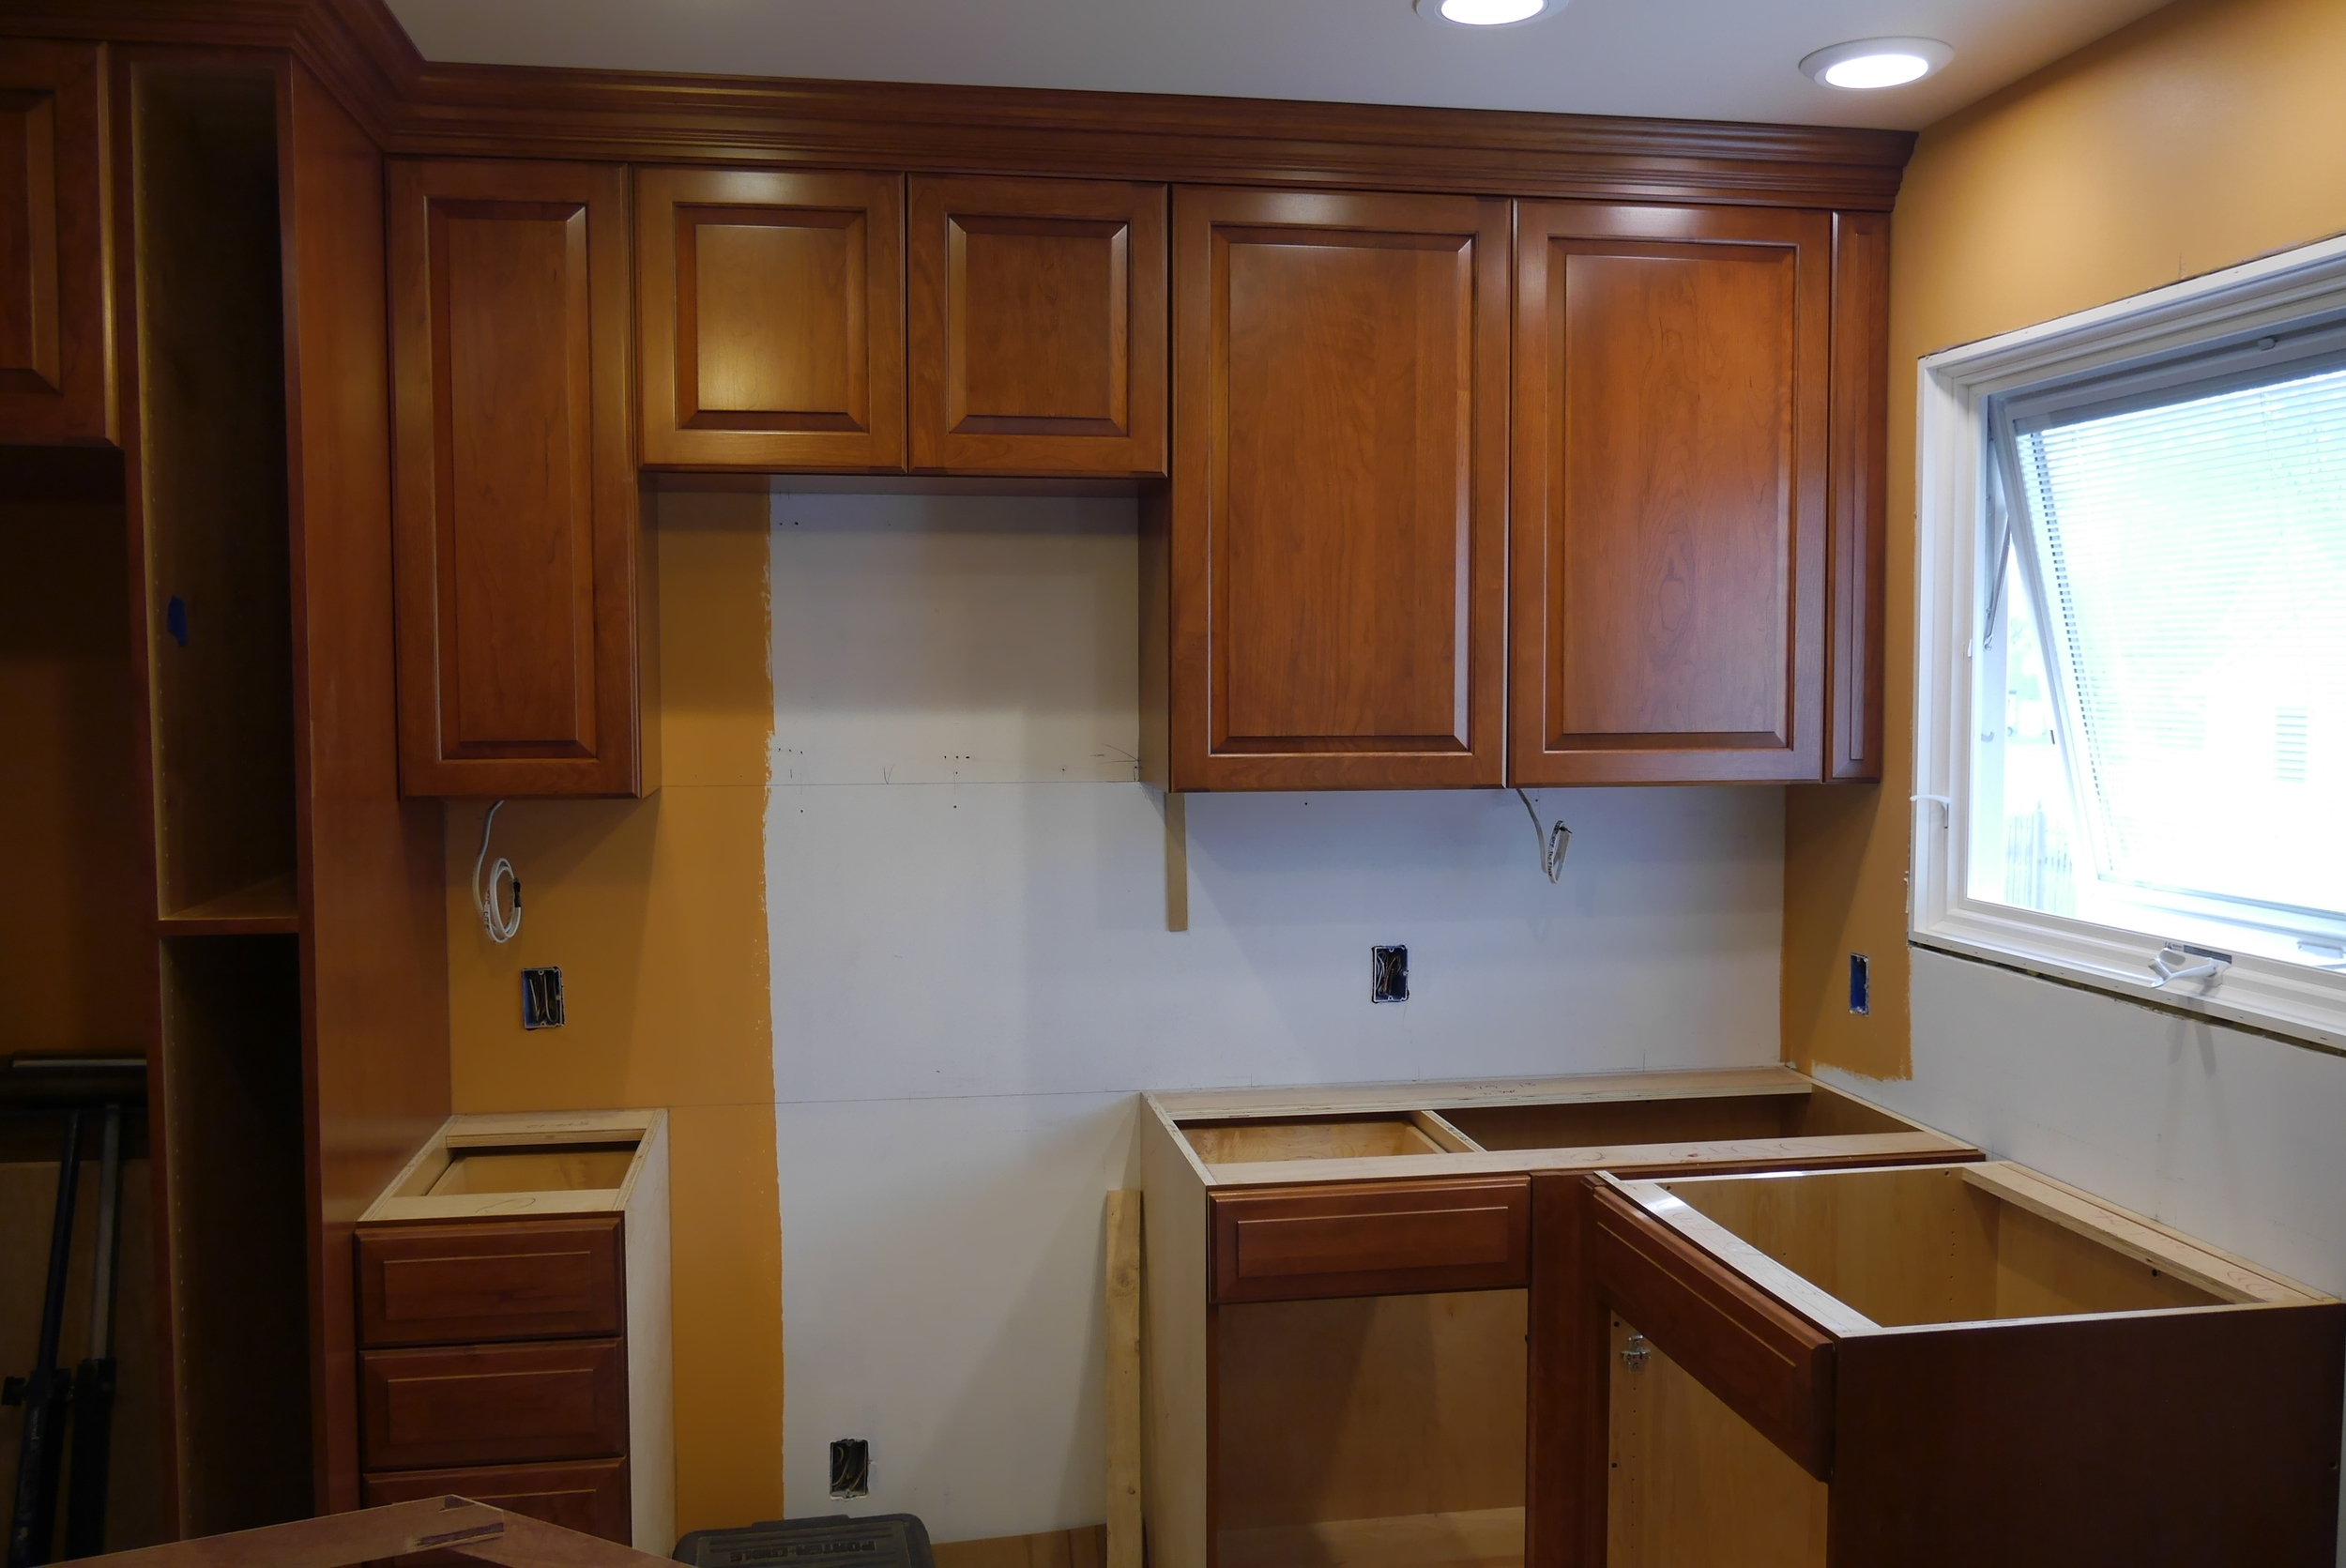 Adelphi custom kitchen during installation by Groundswell Contracting